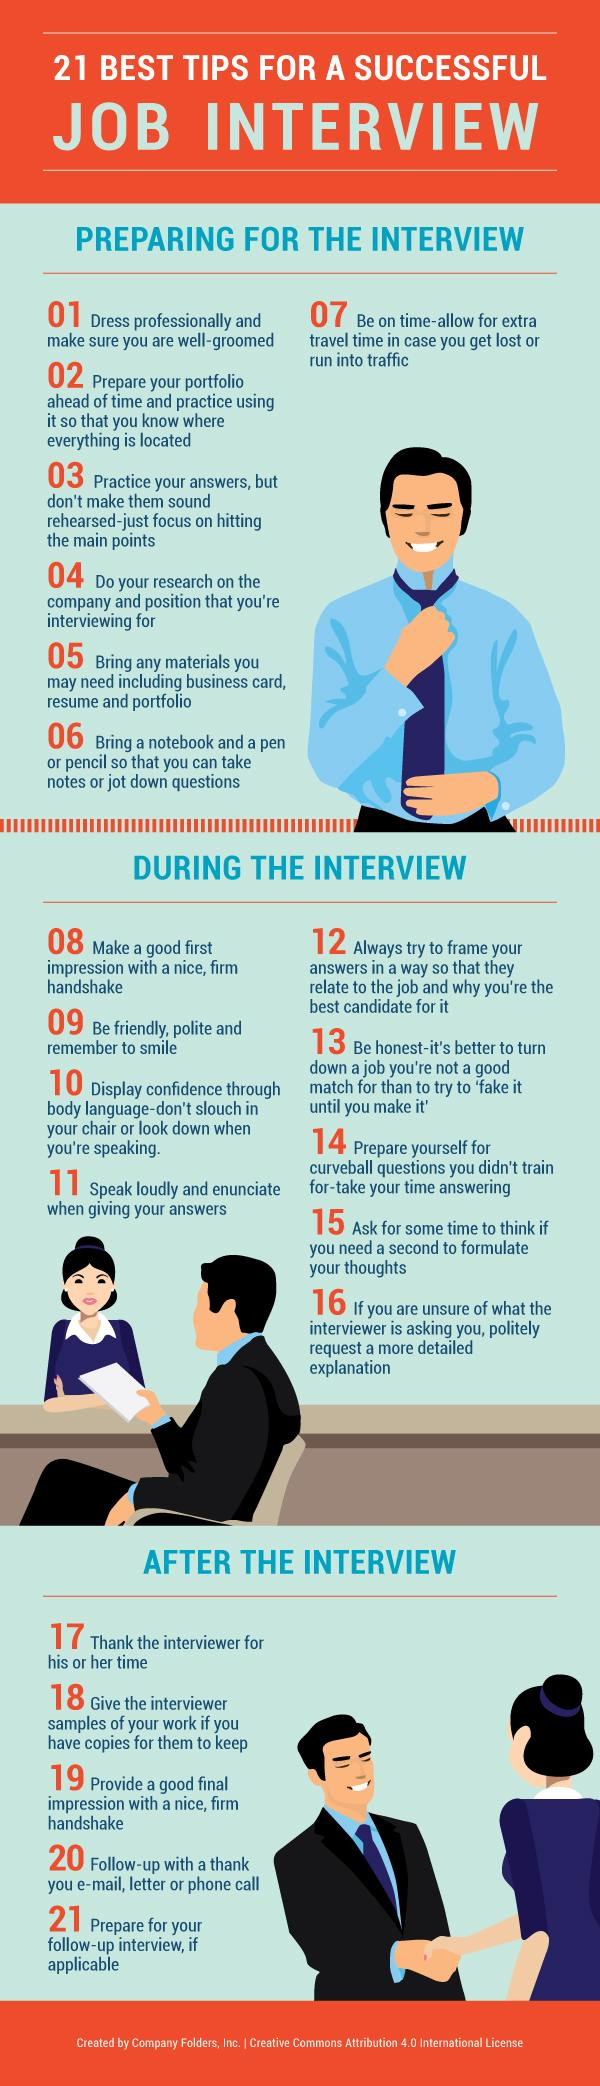 best tips for successful job interview